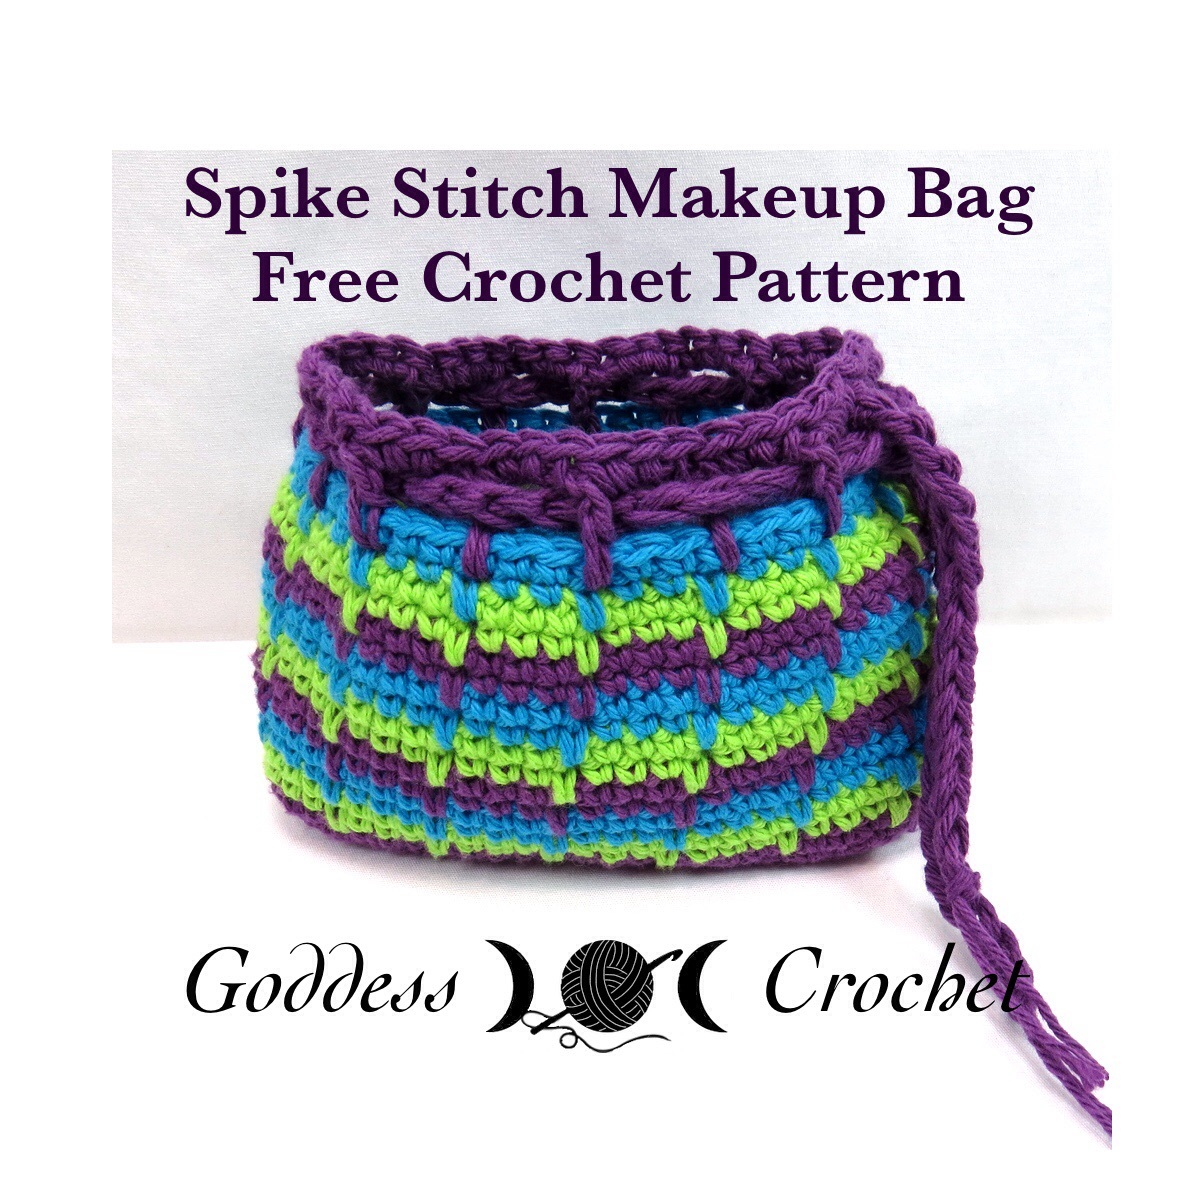 Crochet Cosmetic Bag Pattern : Spike Stitch Makeup Bag - Craftfoxes